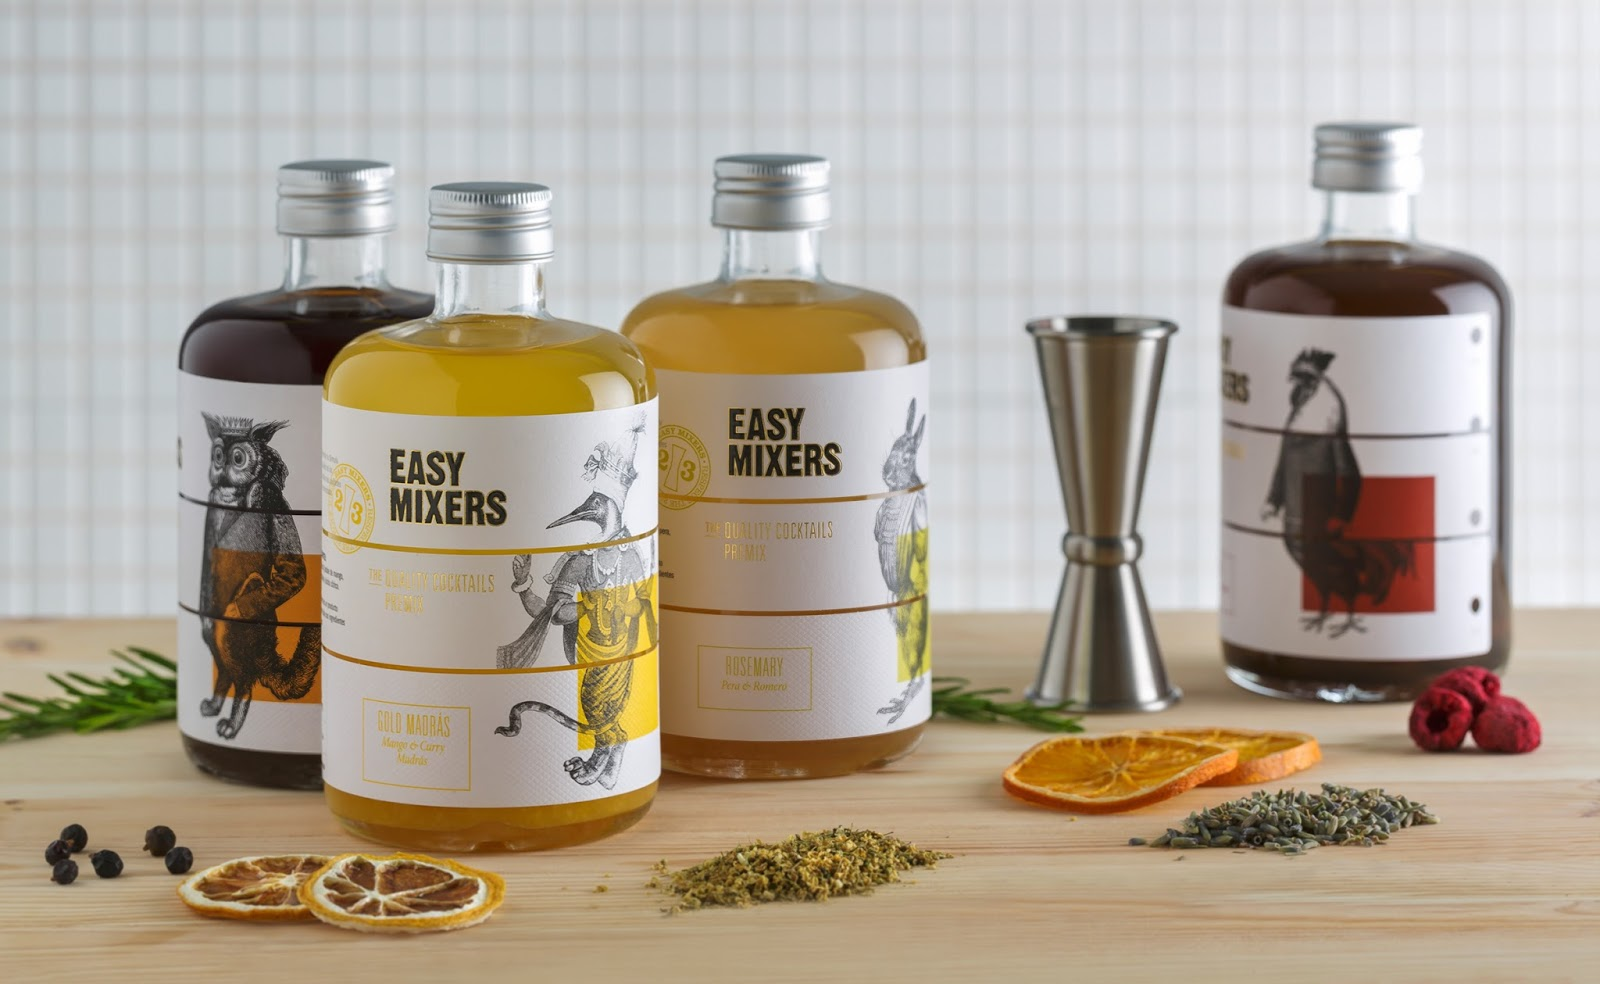 EASY MIXERS, THE NATURAL HANDCRAFTED COCKTAIL SOLUTION